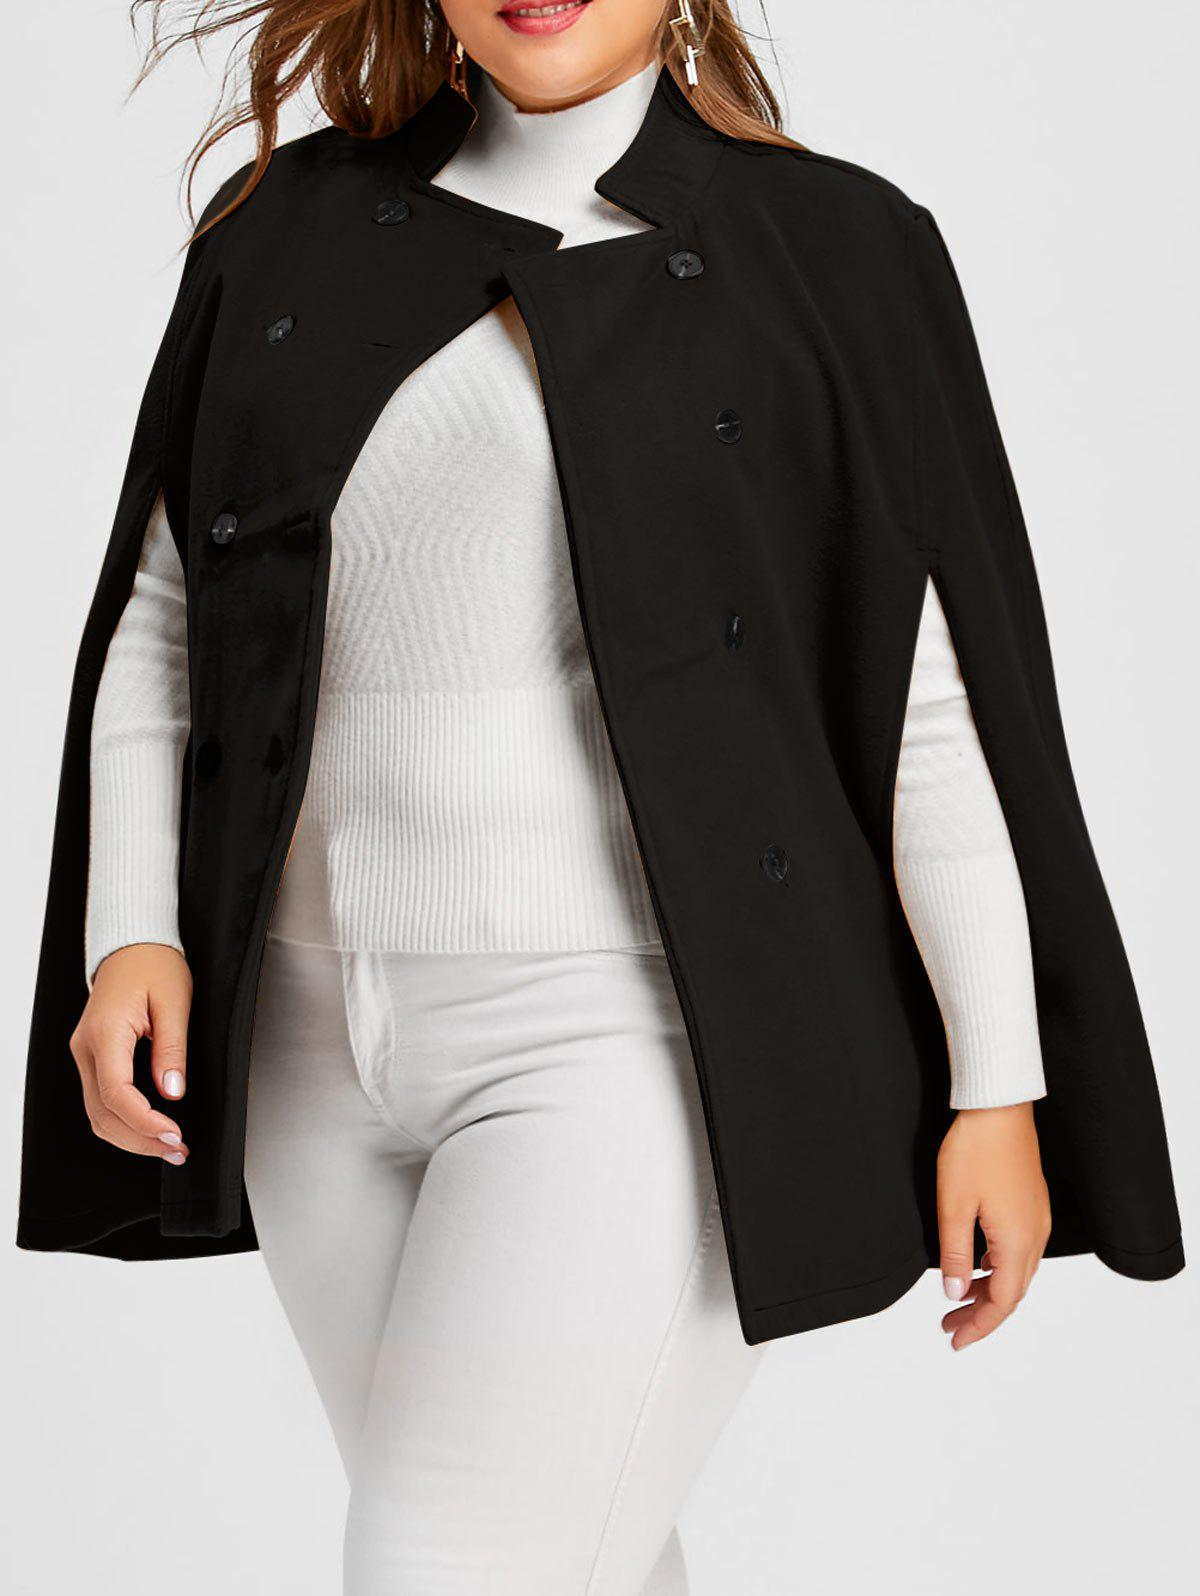 Plus Size Double Breasted Wool Blend Cape Coat with BeltWOMEN<br><br>Size: 5XL; Color: BLACK; Clothes Type: Trench; Material: Polyester; Type: Bat Sleeved; Shirt Length: Regular; Sleeve Length: Three Quarter; Sleeve Type: Batwing Sleeve; Collar: Round Neck; Closure Type: Double Breasted; Pattern Type: Solid; Style: Fashion; Season: Winter; Weight: 0.8000kg; Package Contents: 1 x Coat;